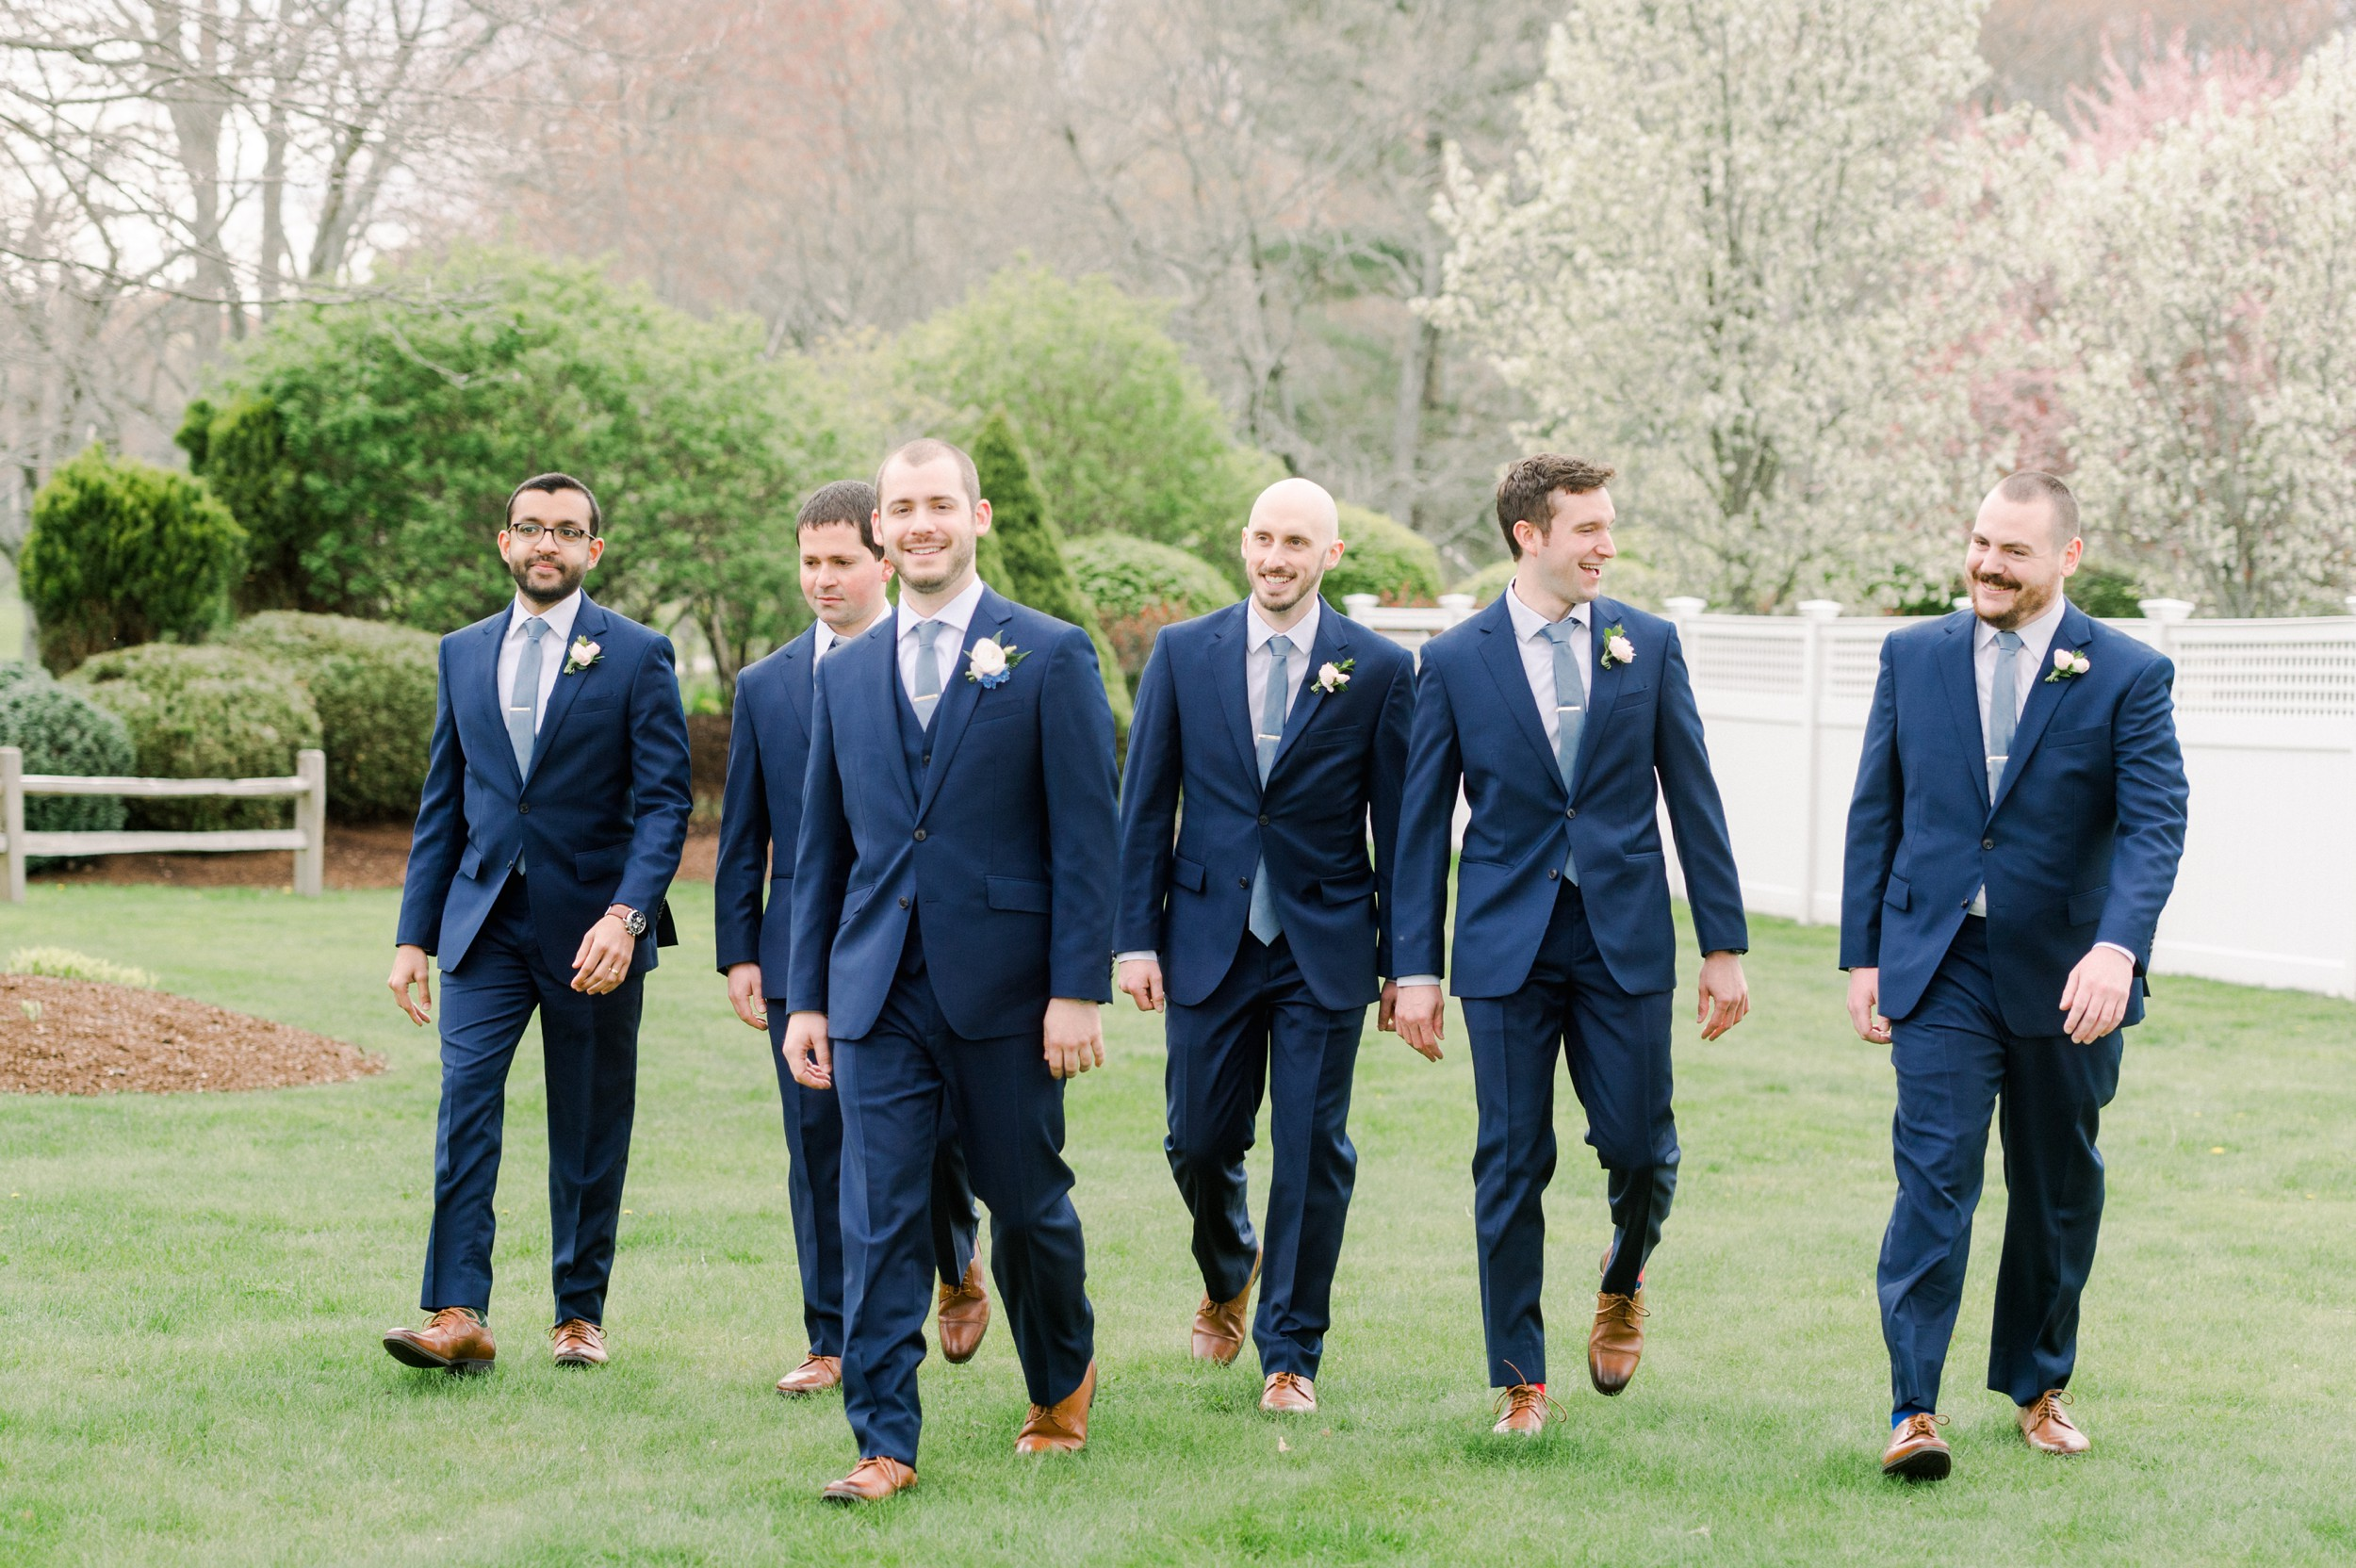 The Villa at Ridder Country Club Spring Wedding East Bridgewater MA First Look navy suits for groomsmen